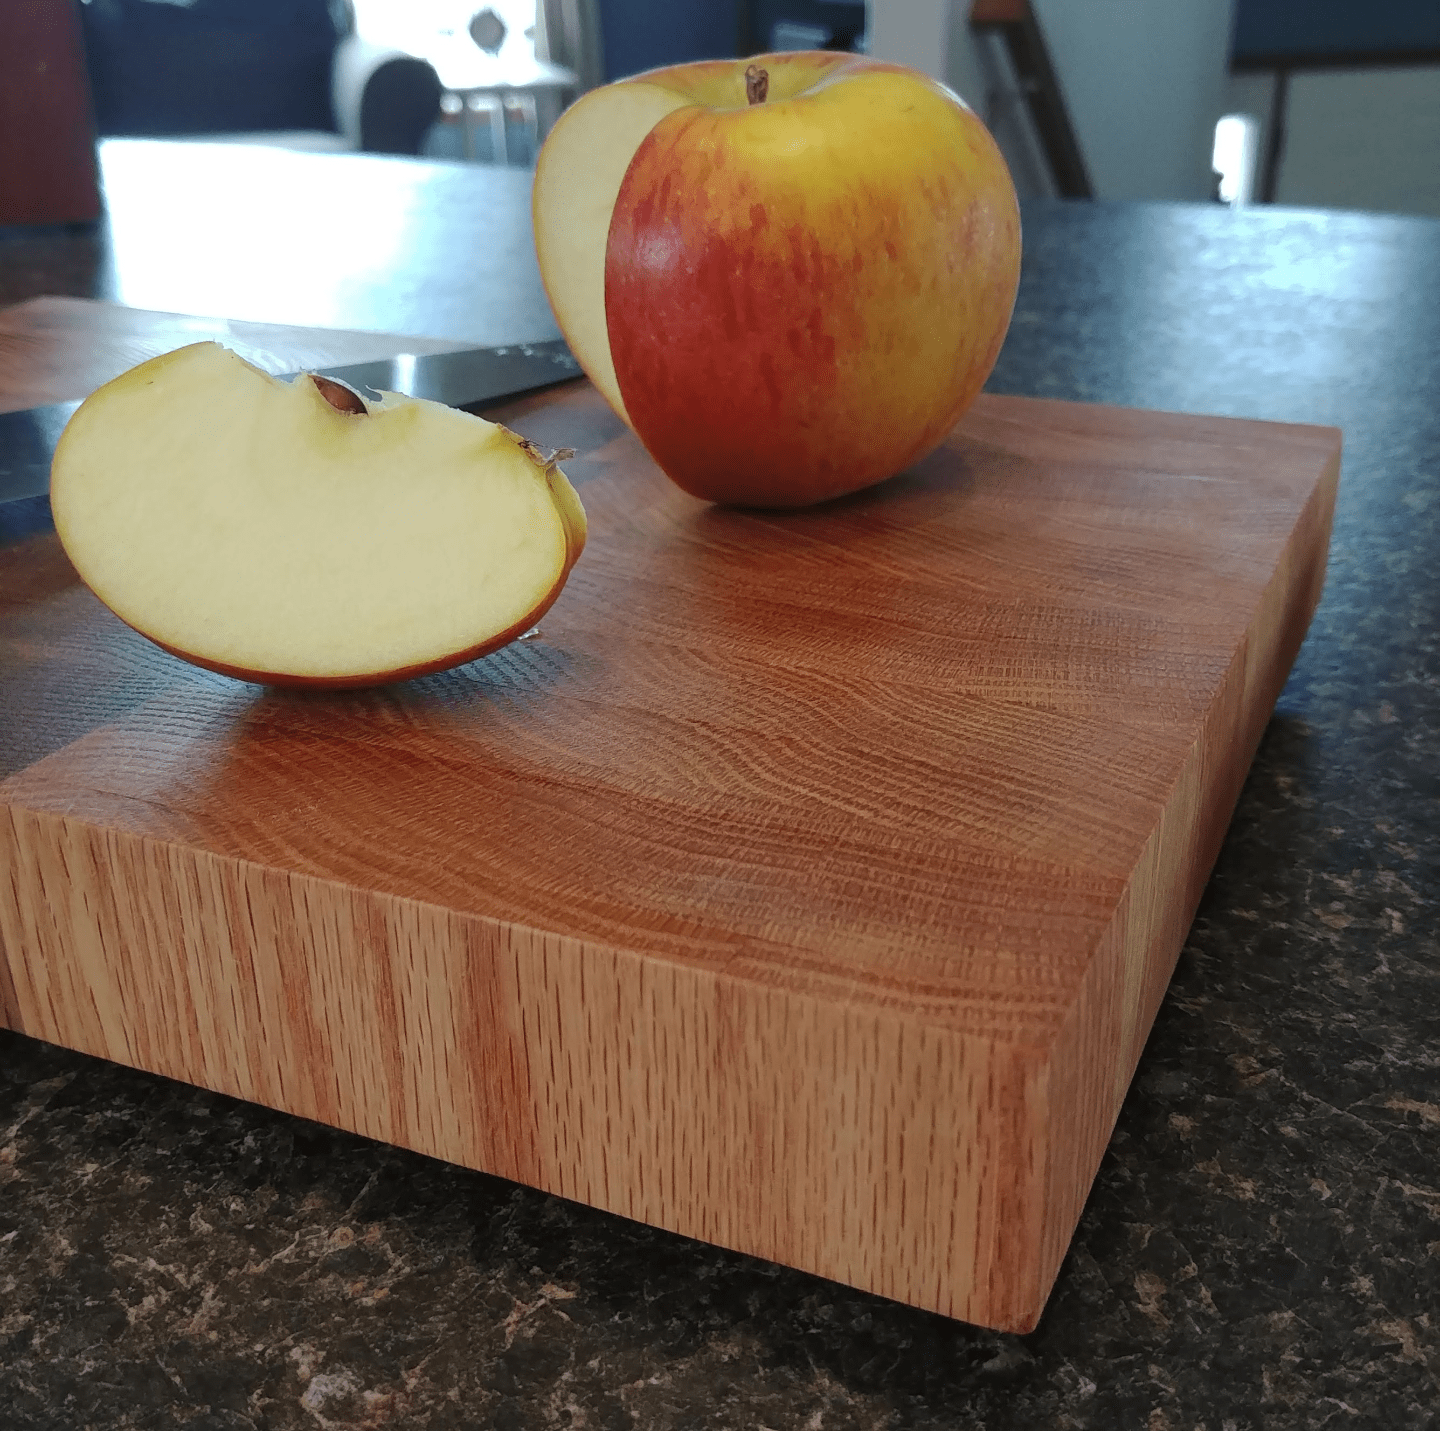 This is an end-grain cutting board that we made for a friend with some matching oak end-grain coasters.